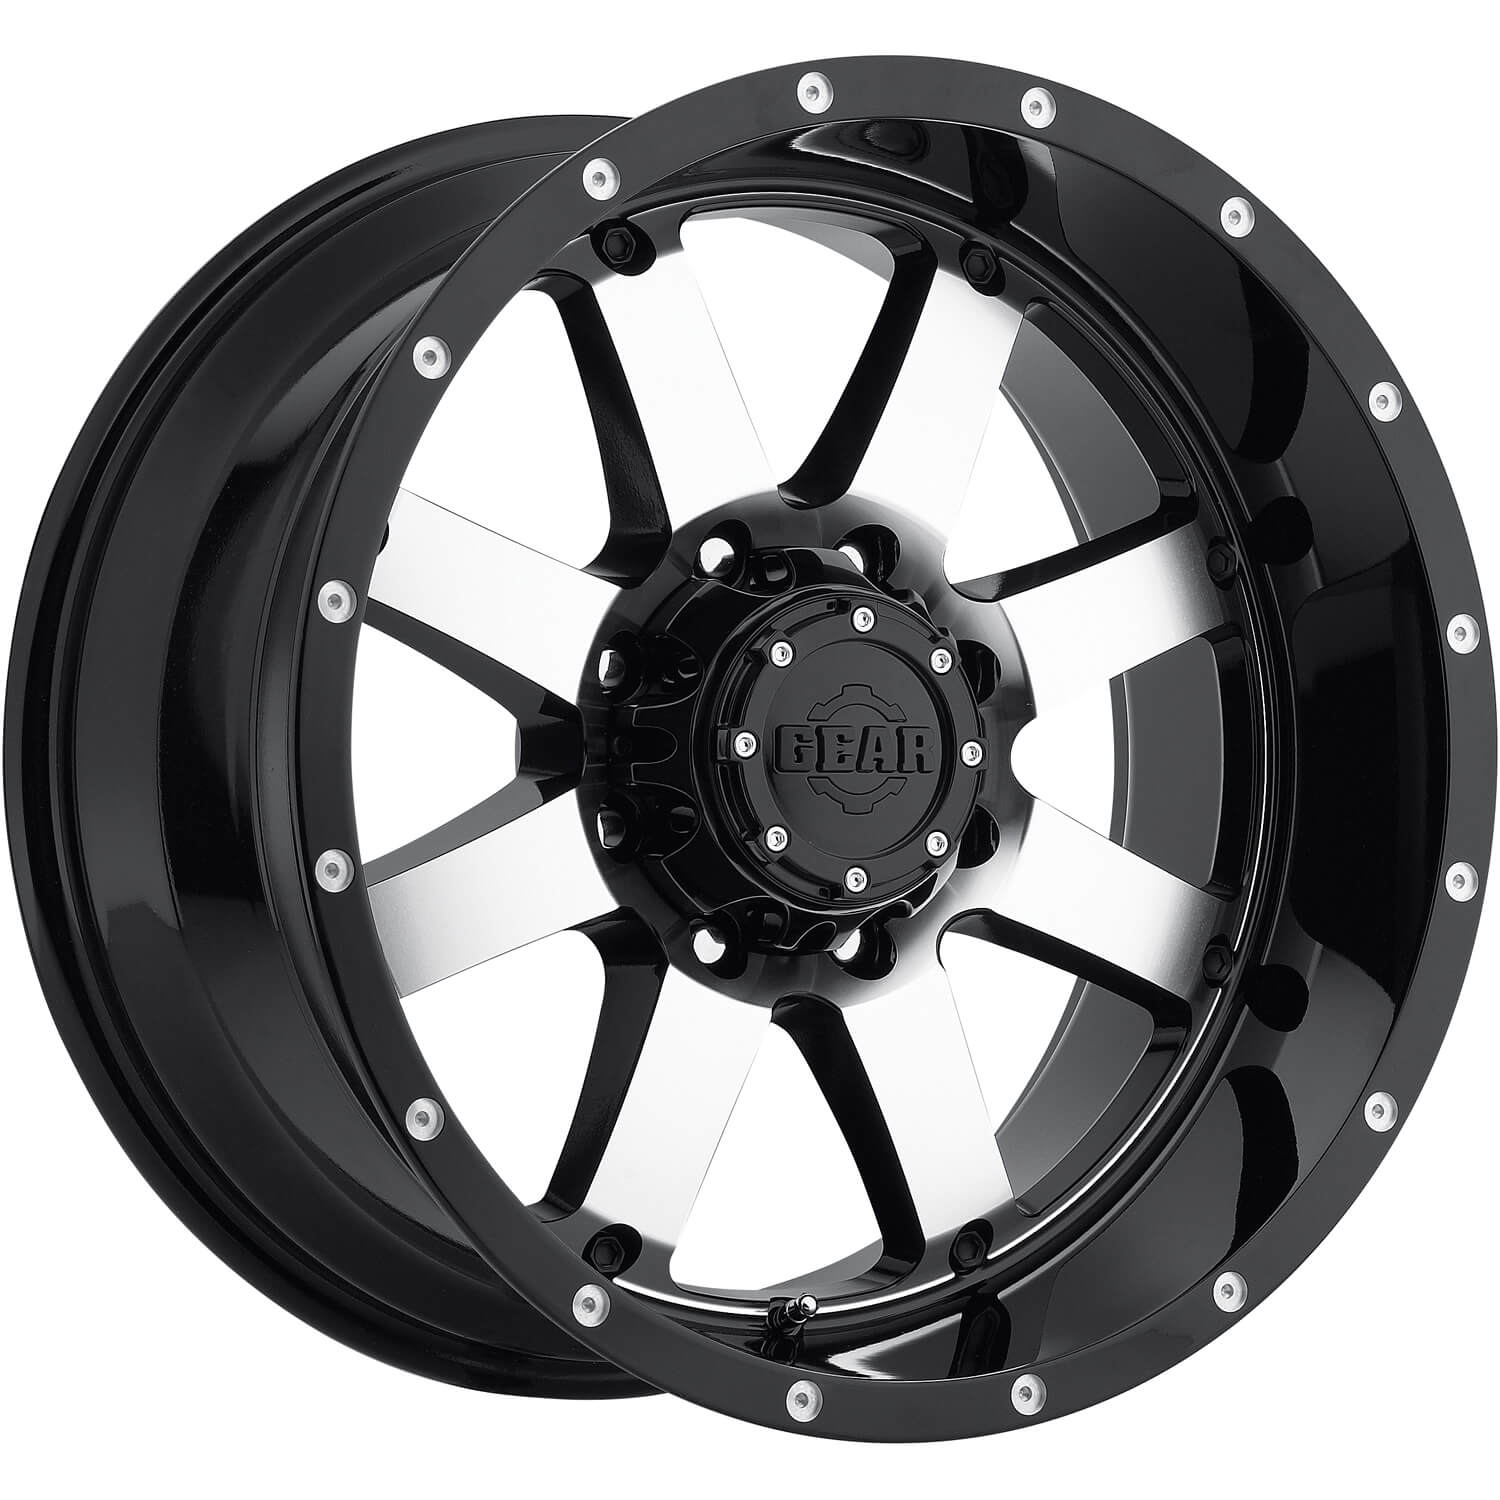 Gear Alloy Big Block 17x9 18 Custom Wheels